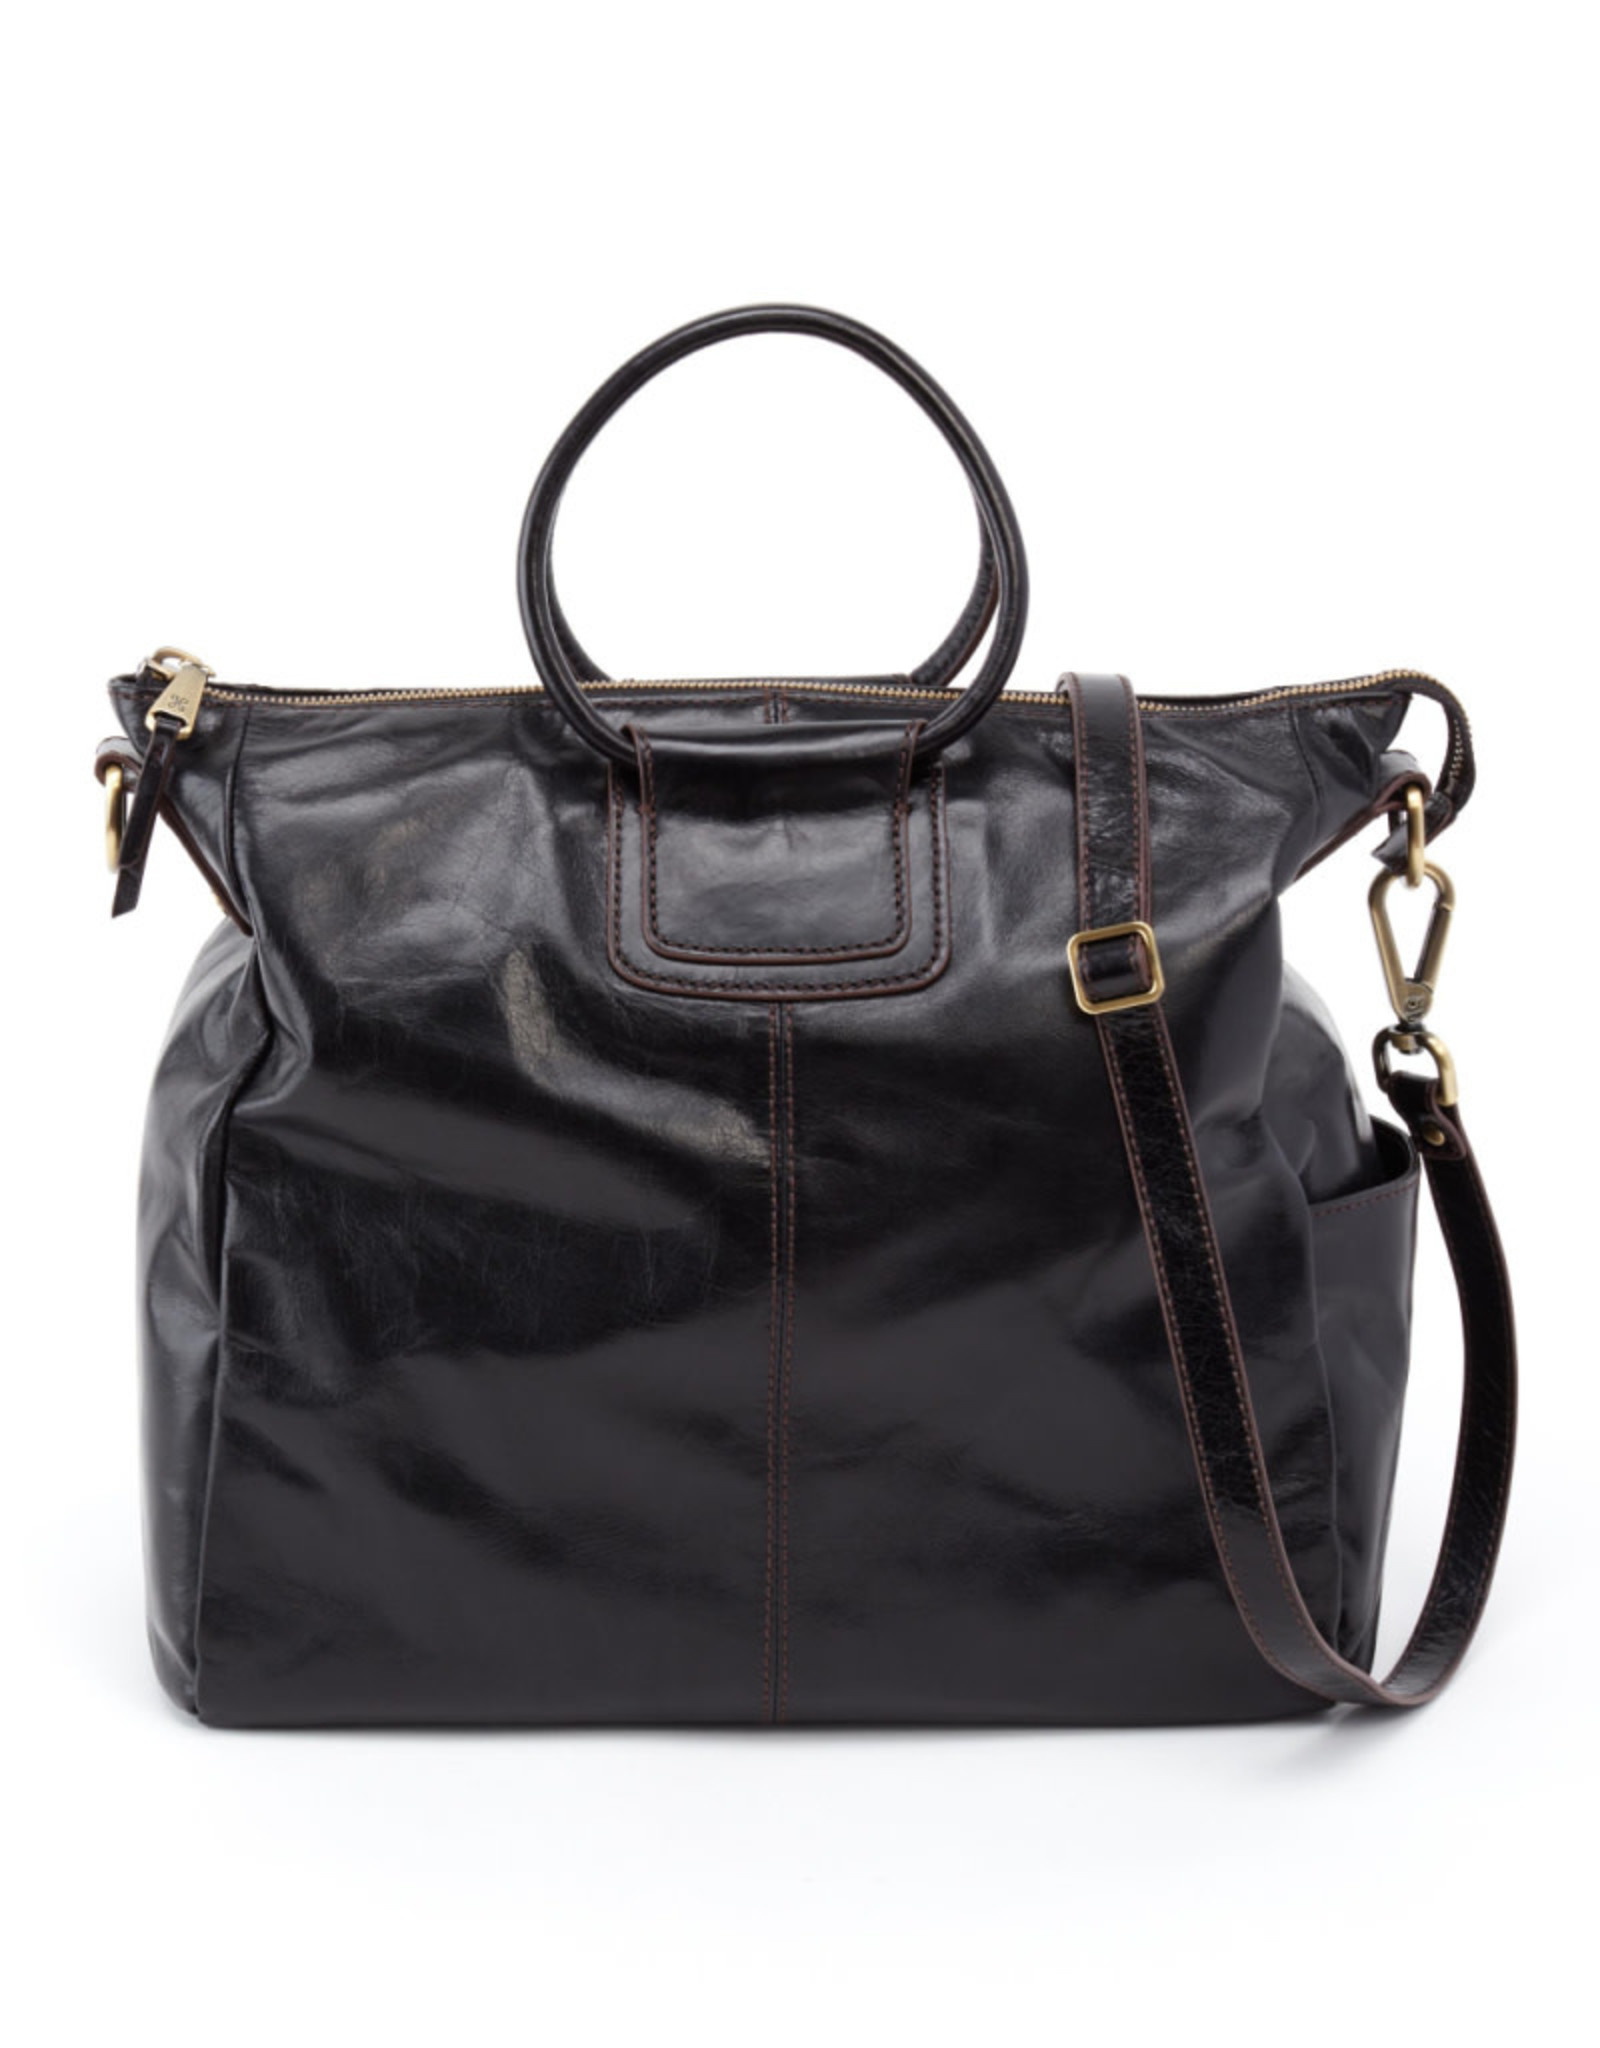 Hobo Sheila Leather Travel Bag